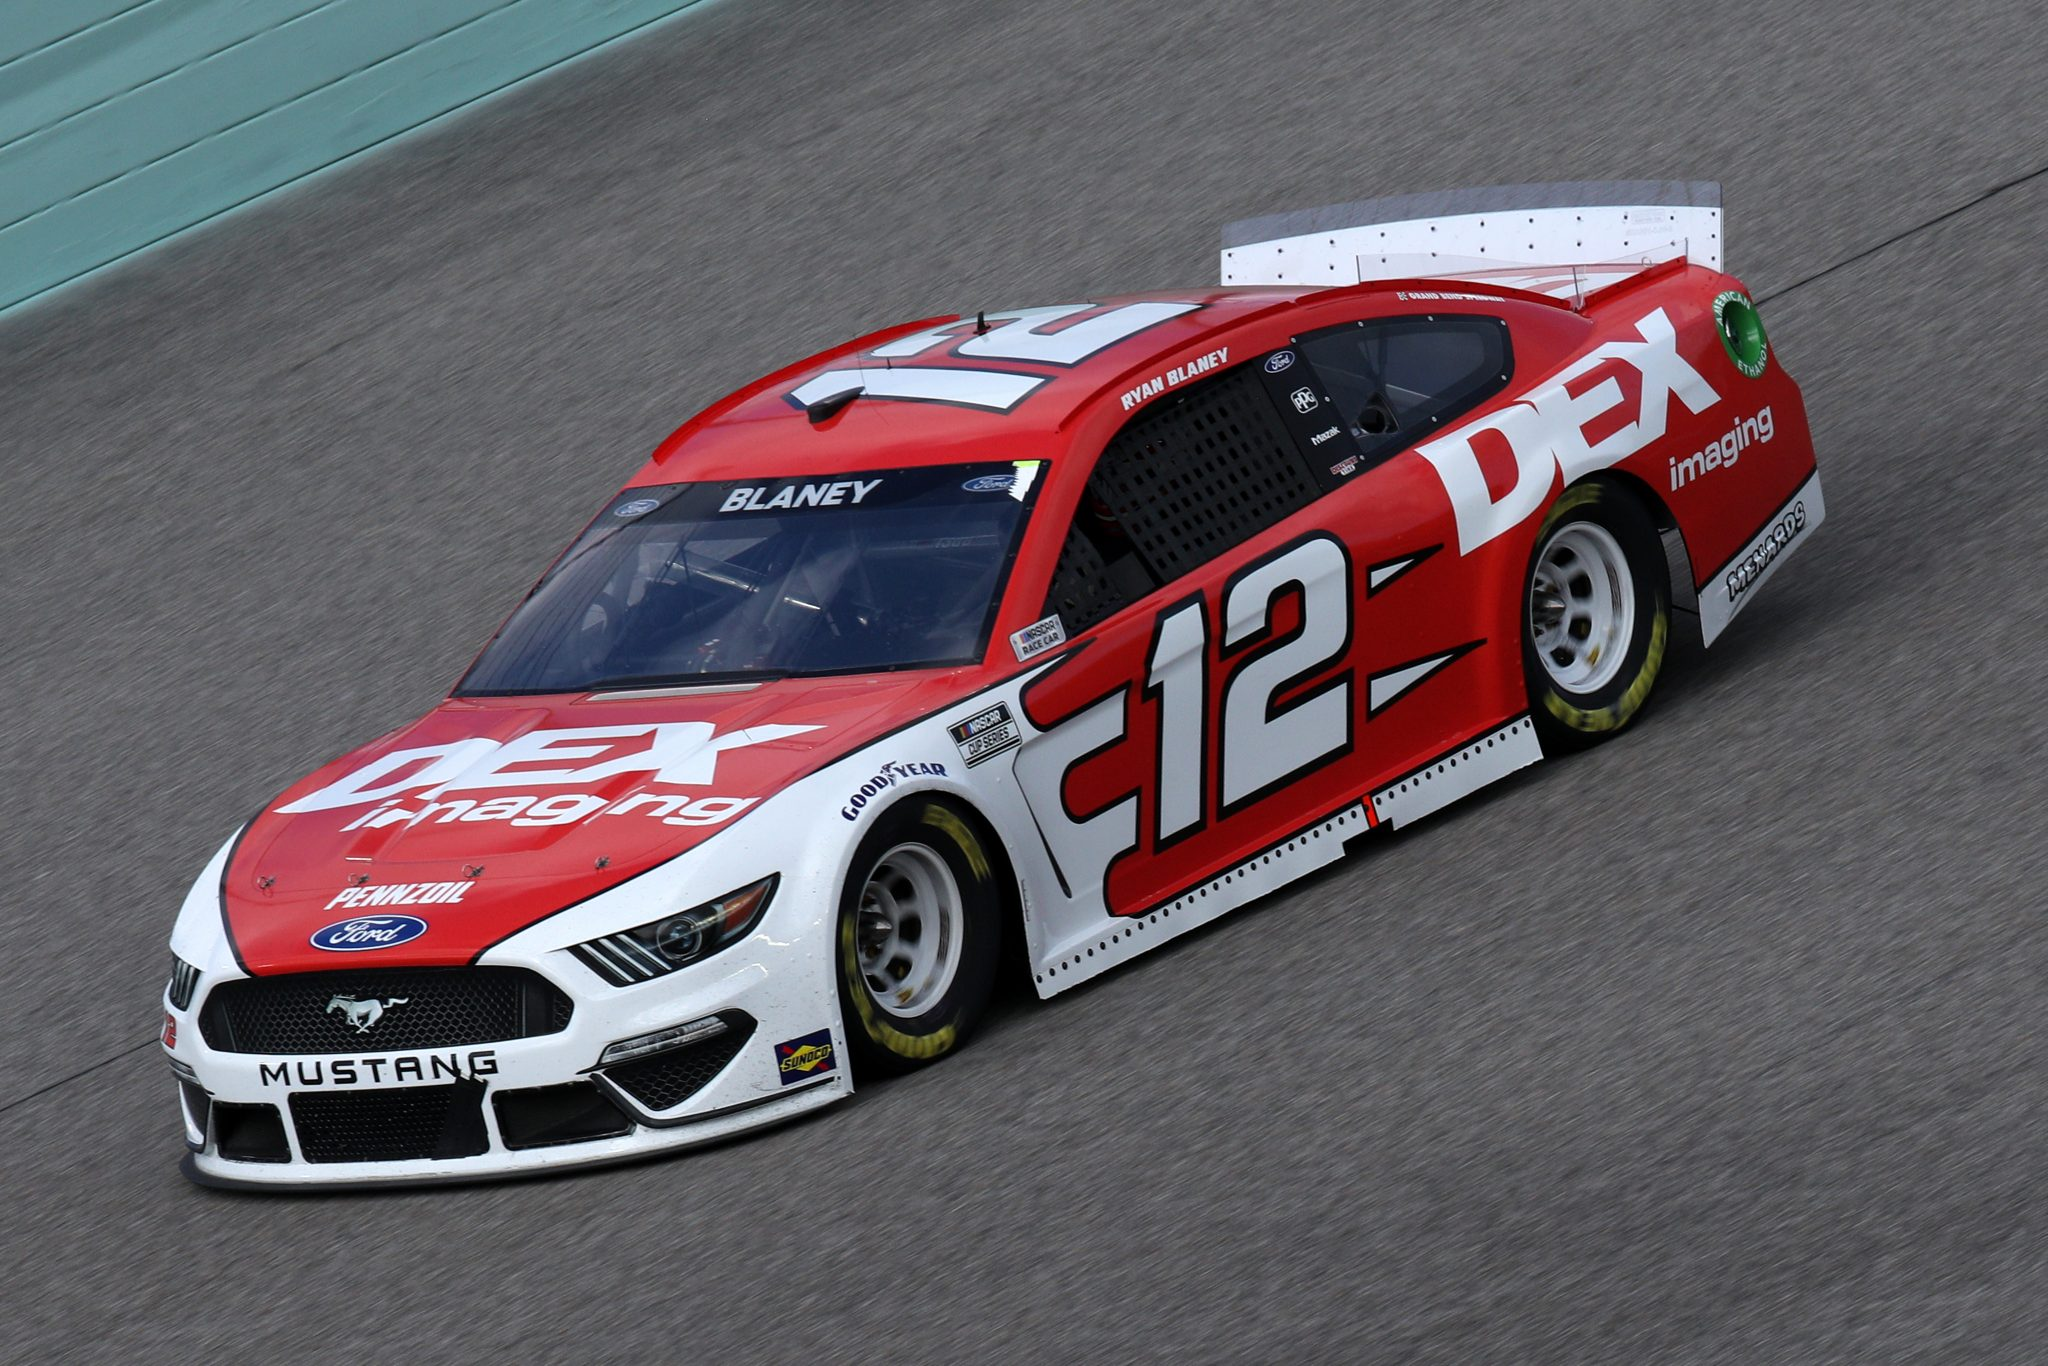 HOMESTEAD, FLORIDA - FEBRUARY 28: Ryan Blaney, driver of the #12 DEX Imaging Ford, drives during the NASCAR Cup Series Dixie Vodka 400 at Homestead-Miami Speedway on February 28, 2021 in Homestead, Florida. (Photo by Sean Gardner/Getty Images) | Getty Images